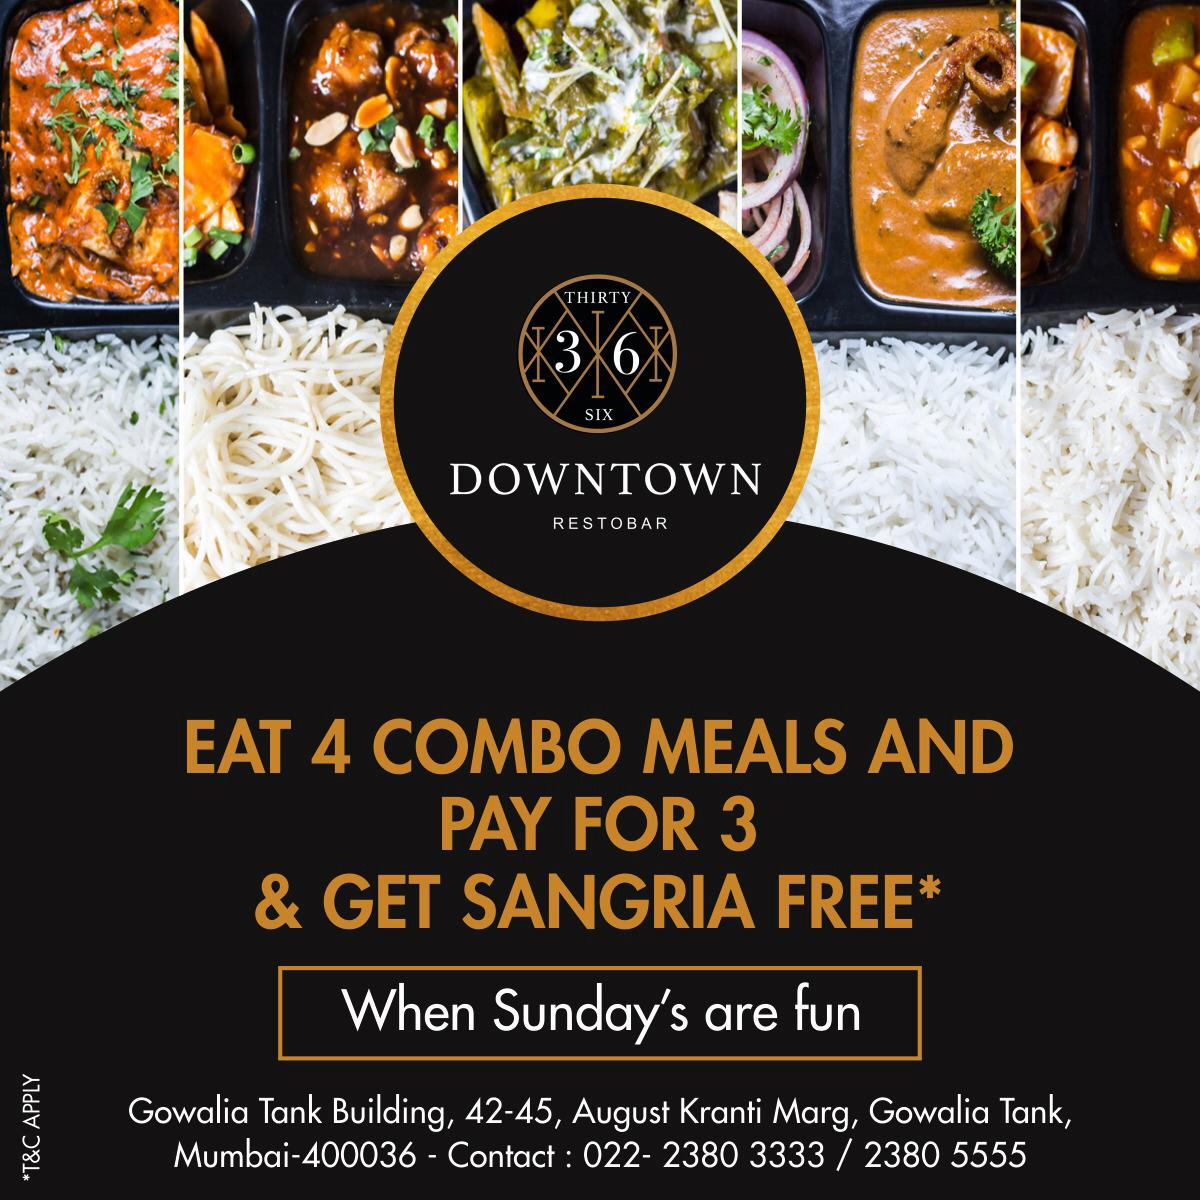 On this exciting Sunday, we bring to you this exciting offer! Have four of our inviting meals and pay for only three of them and also have Sangria free. We promise to leave you licking your fingers. #36downtownrestobar #restobar #Livescreening #music #combomeals #Sangria #mumbai